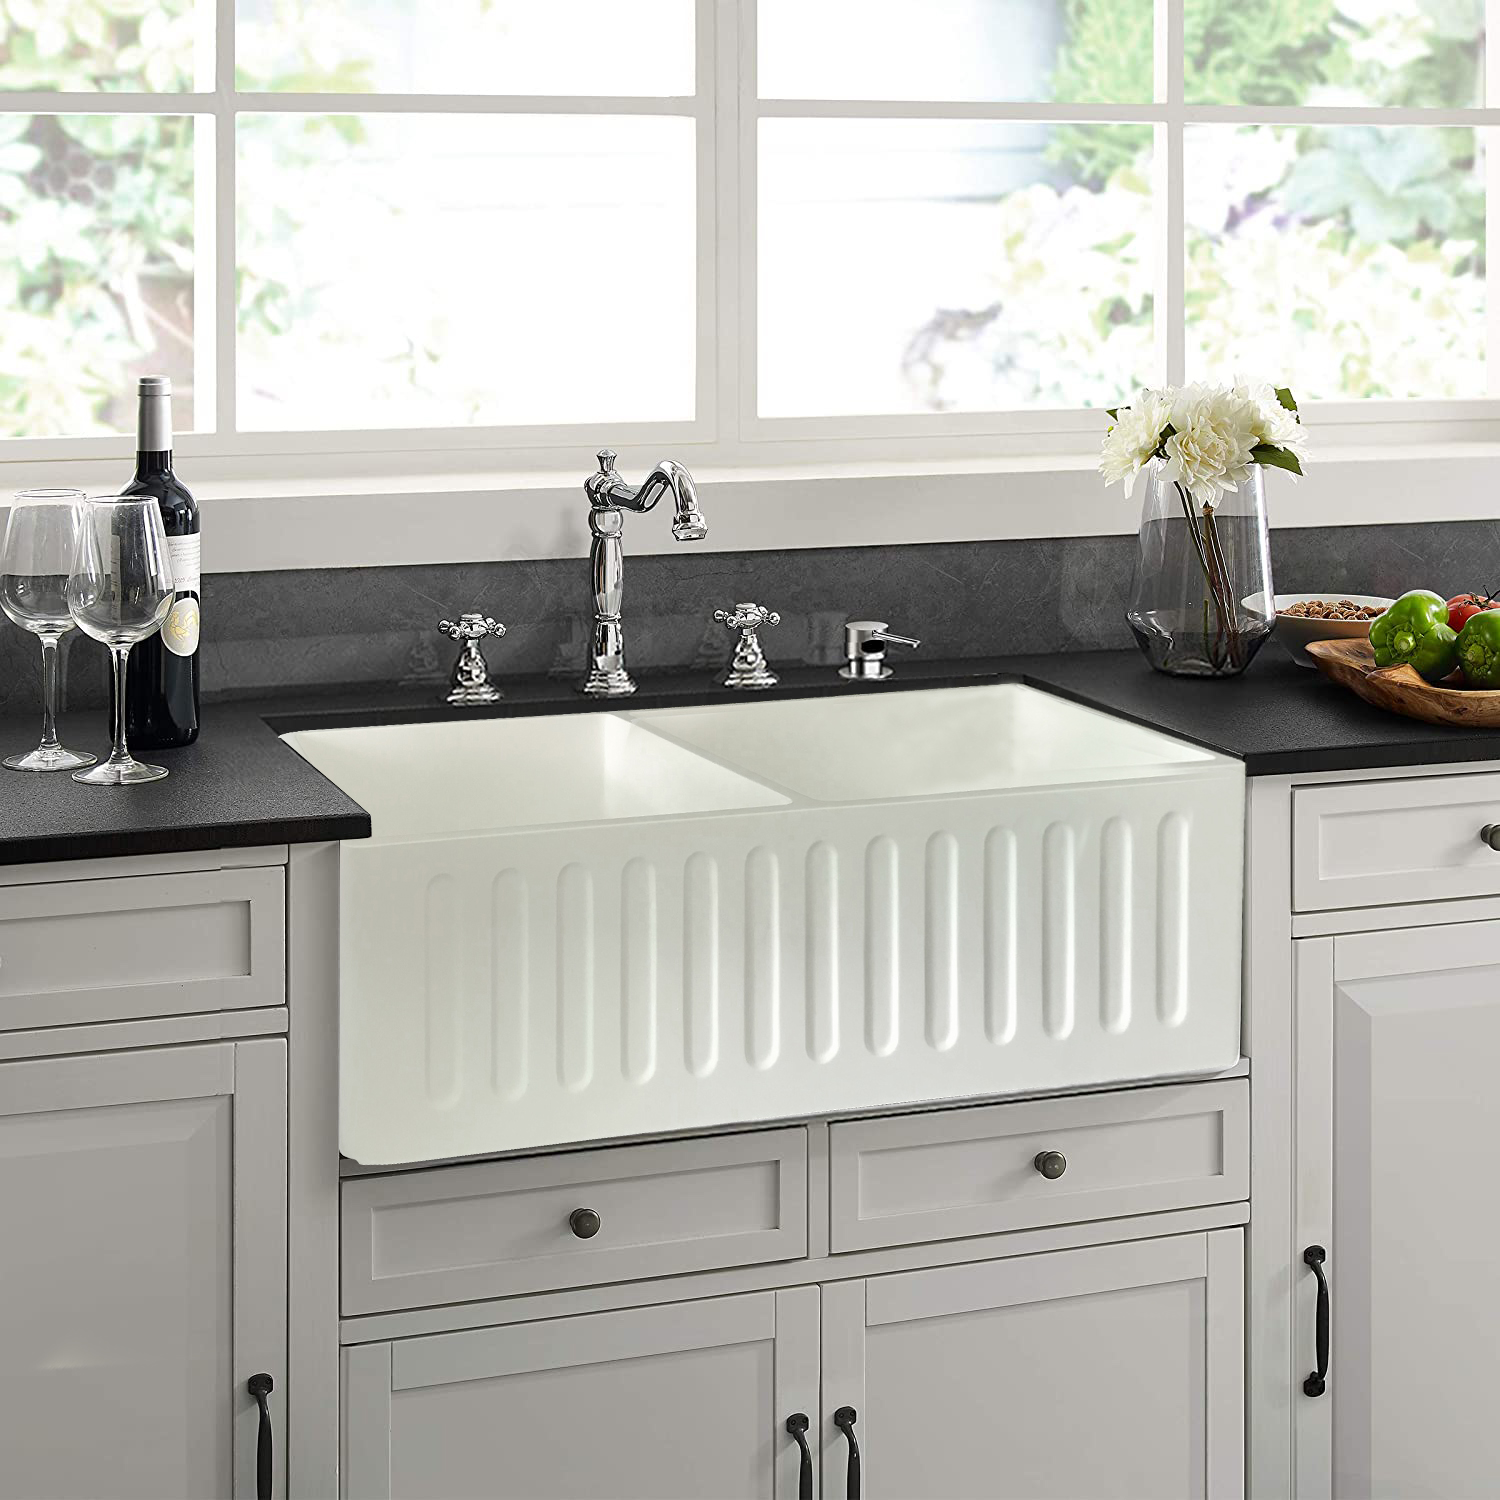 solid surface farmhouse front apron artificial marble kitchen sink buy cheap kitchen sinks white kitchen sinks kitchen sink supplier product on